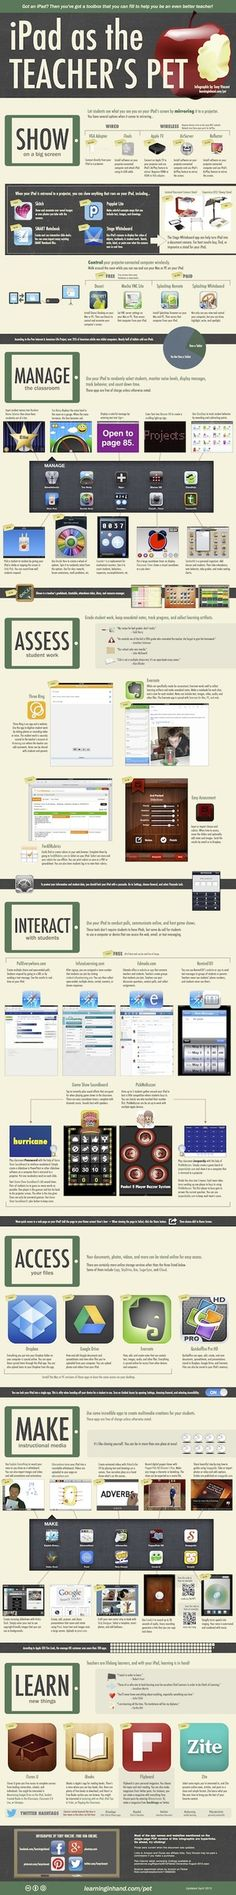 iPad as the Teachers Pet [Infographic]